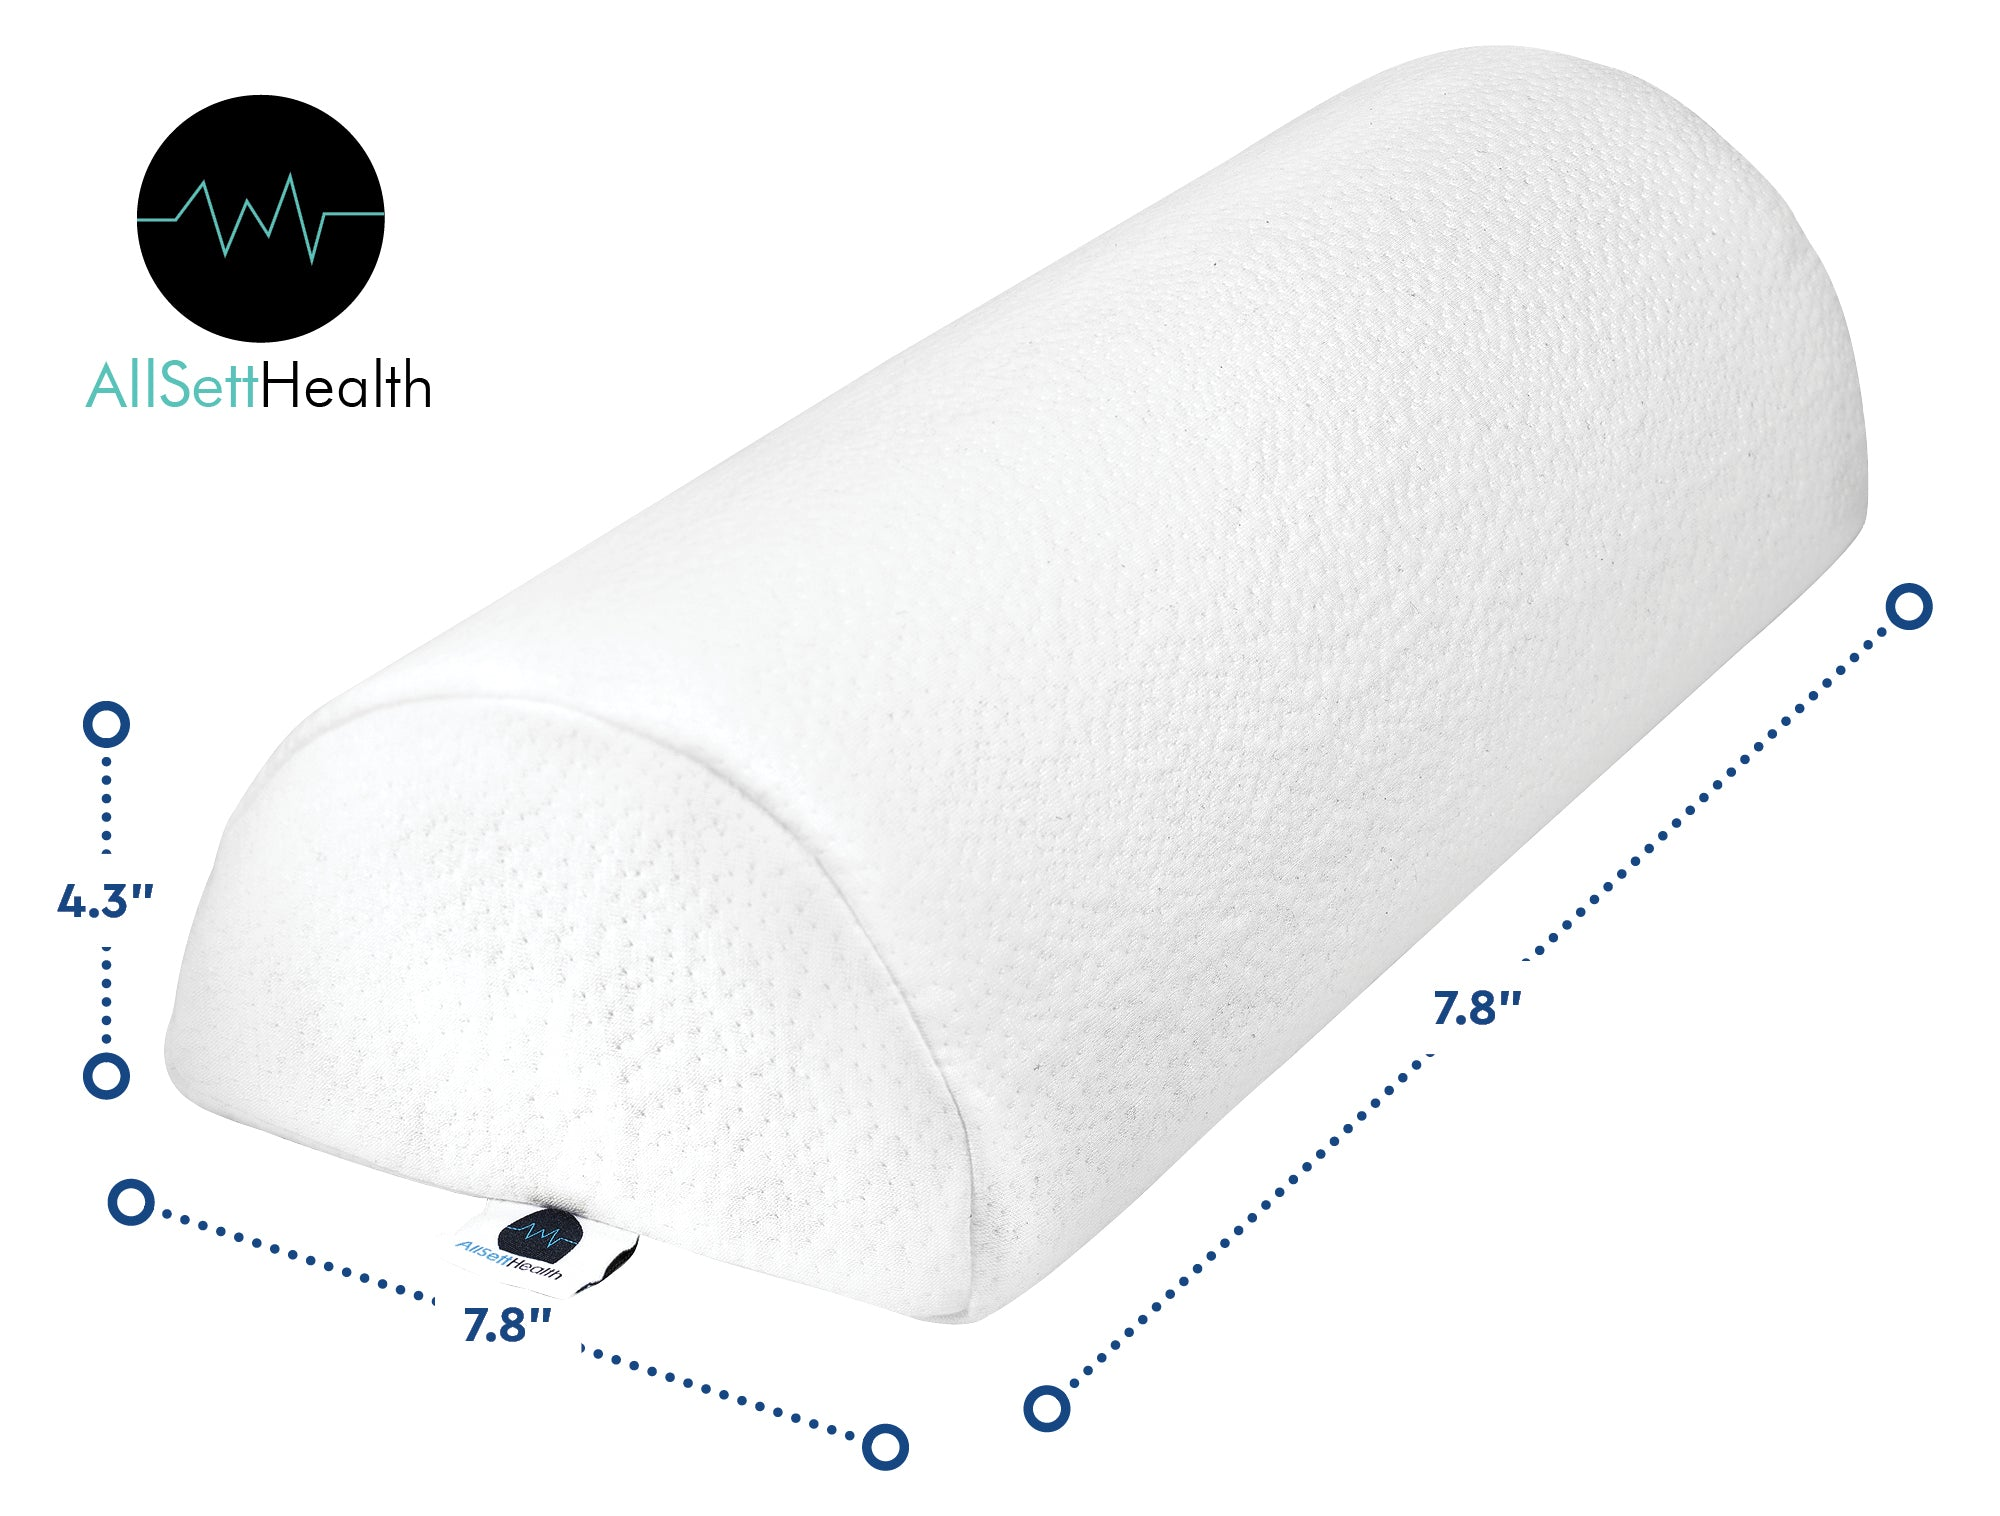 "2 PACK - XXL Half Moon Bolster pillow for Legs, Back and Head | Semi Roll for Ankle and Foot Comfort With White Cotton Machine washable cover | Premium Memory Foam | 2 pillow system 20.5"" x 8"" x 4.5"""